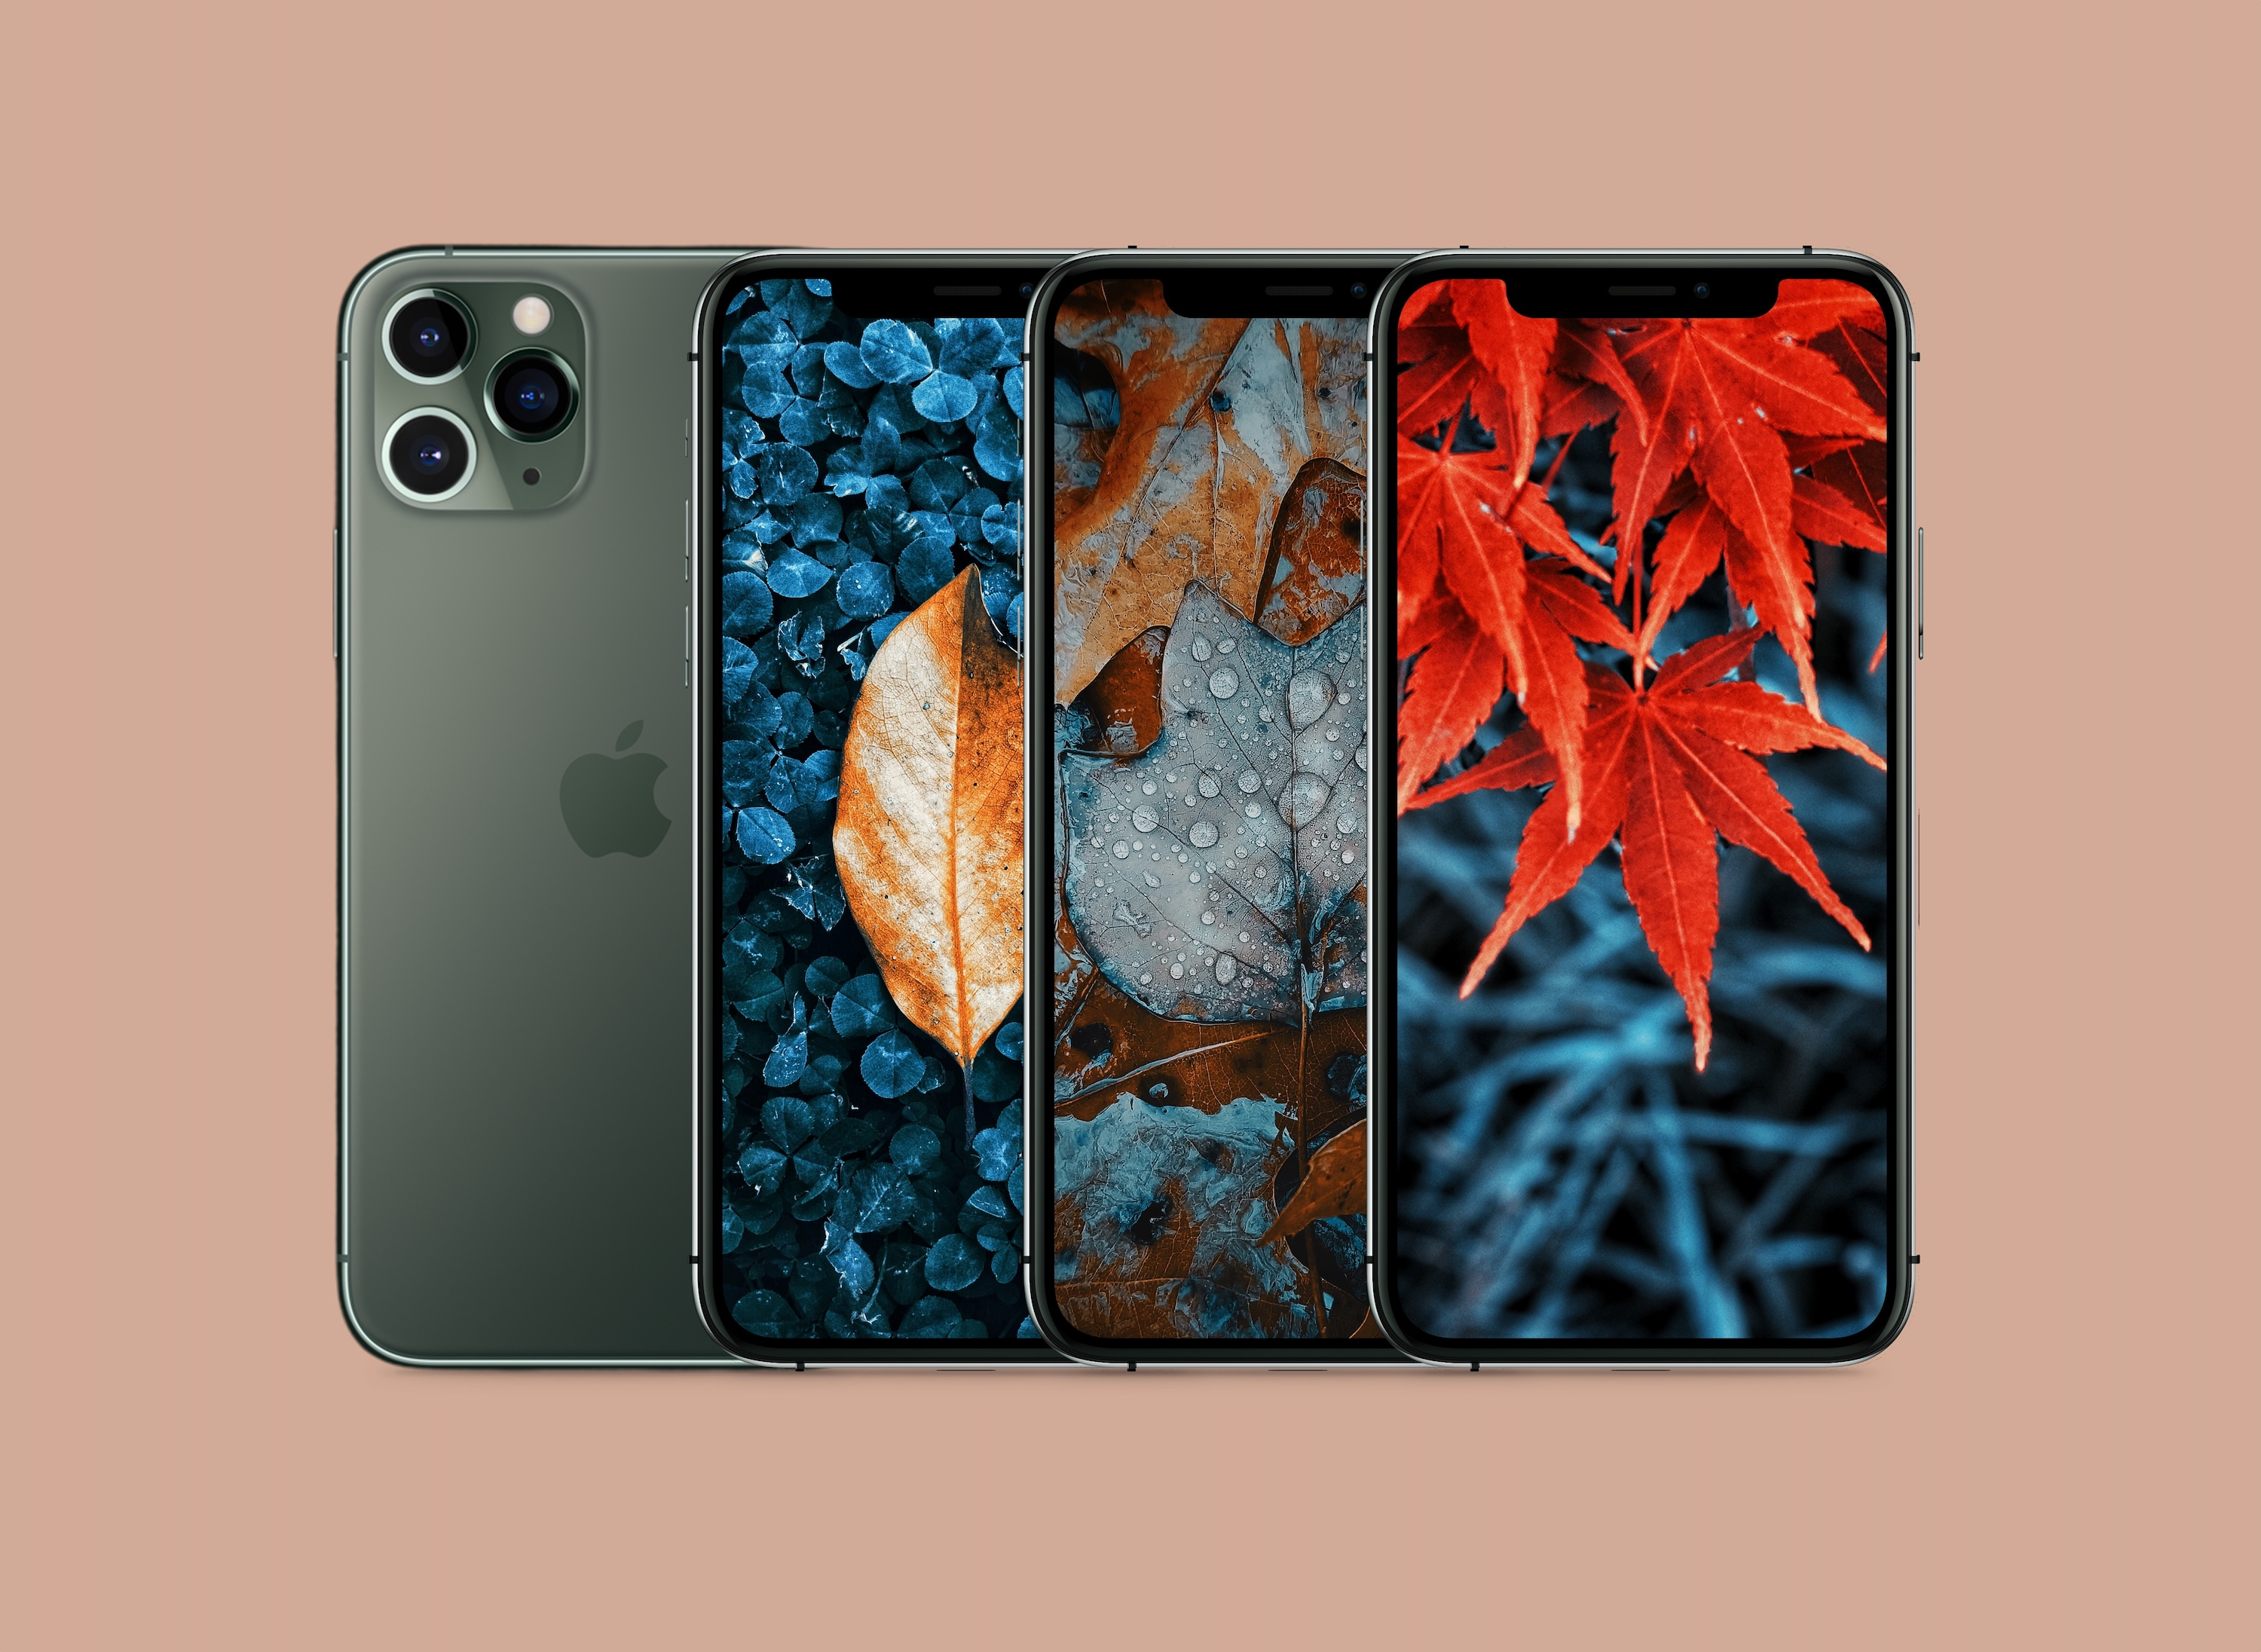 Fall Colored Autumn Leaves Wallpapers For Iphone